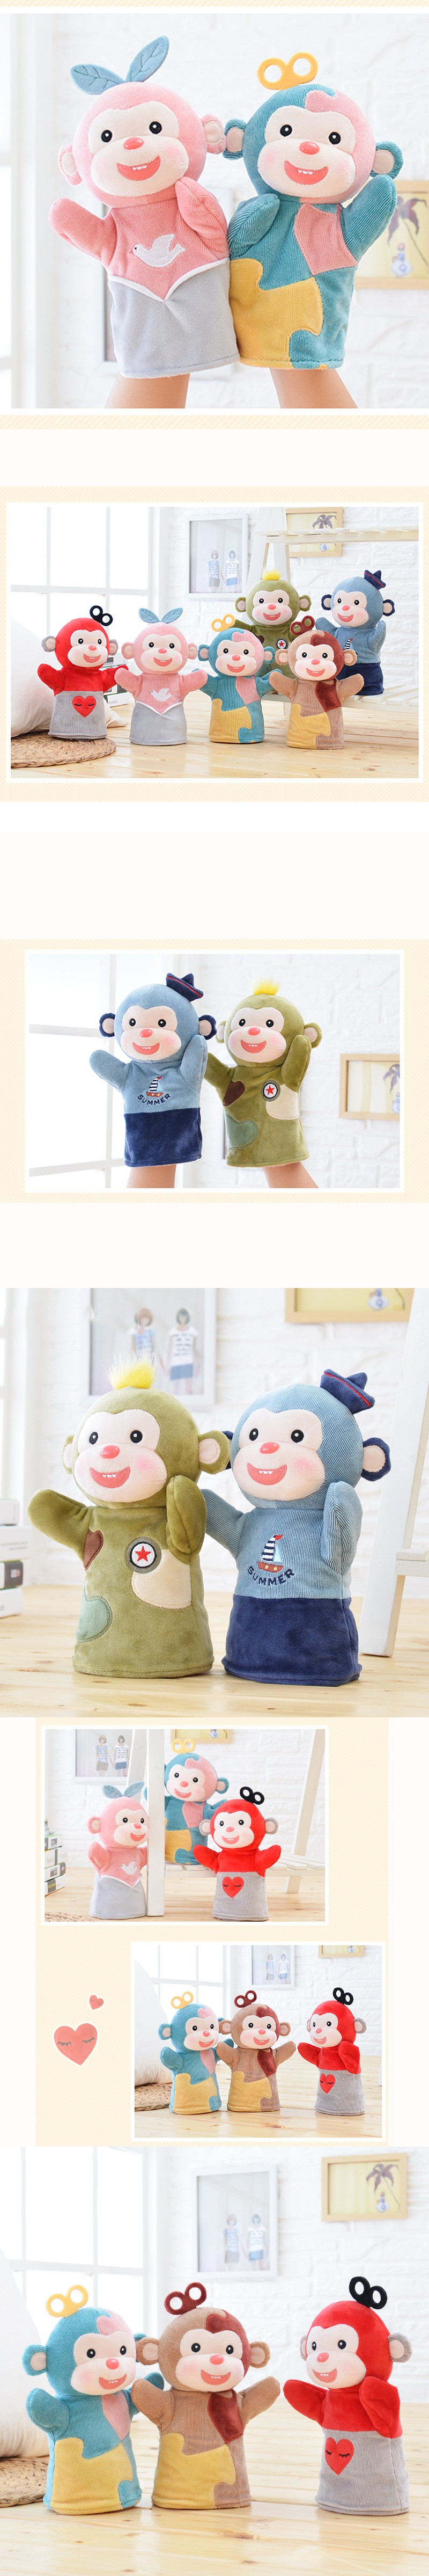 2016 funny home decor monkey for kids decoration crafts cotton